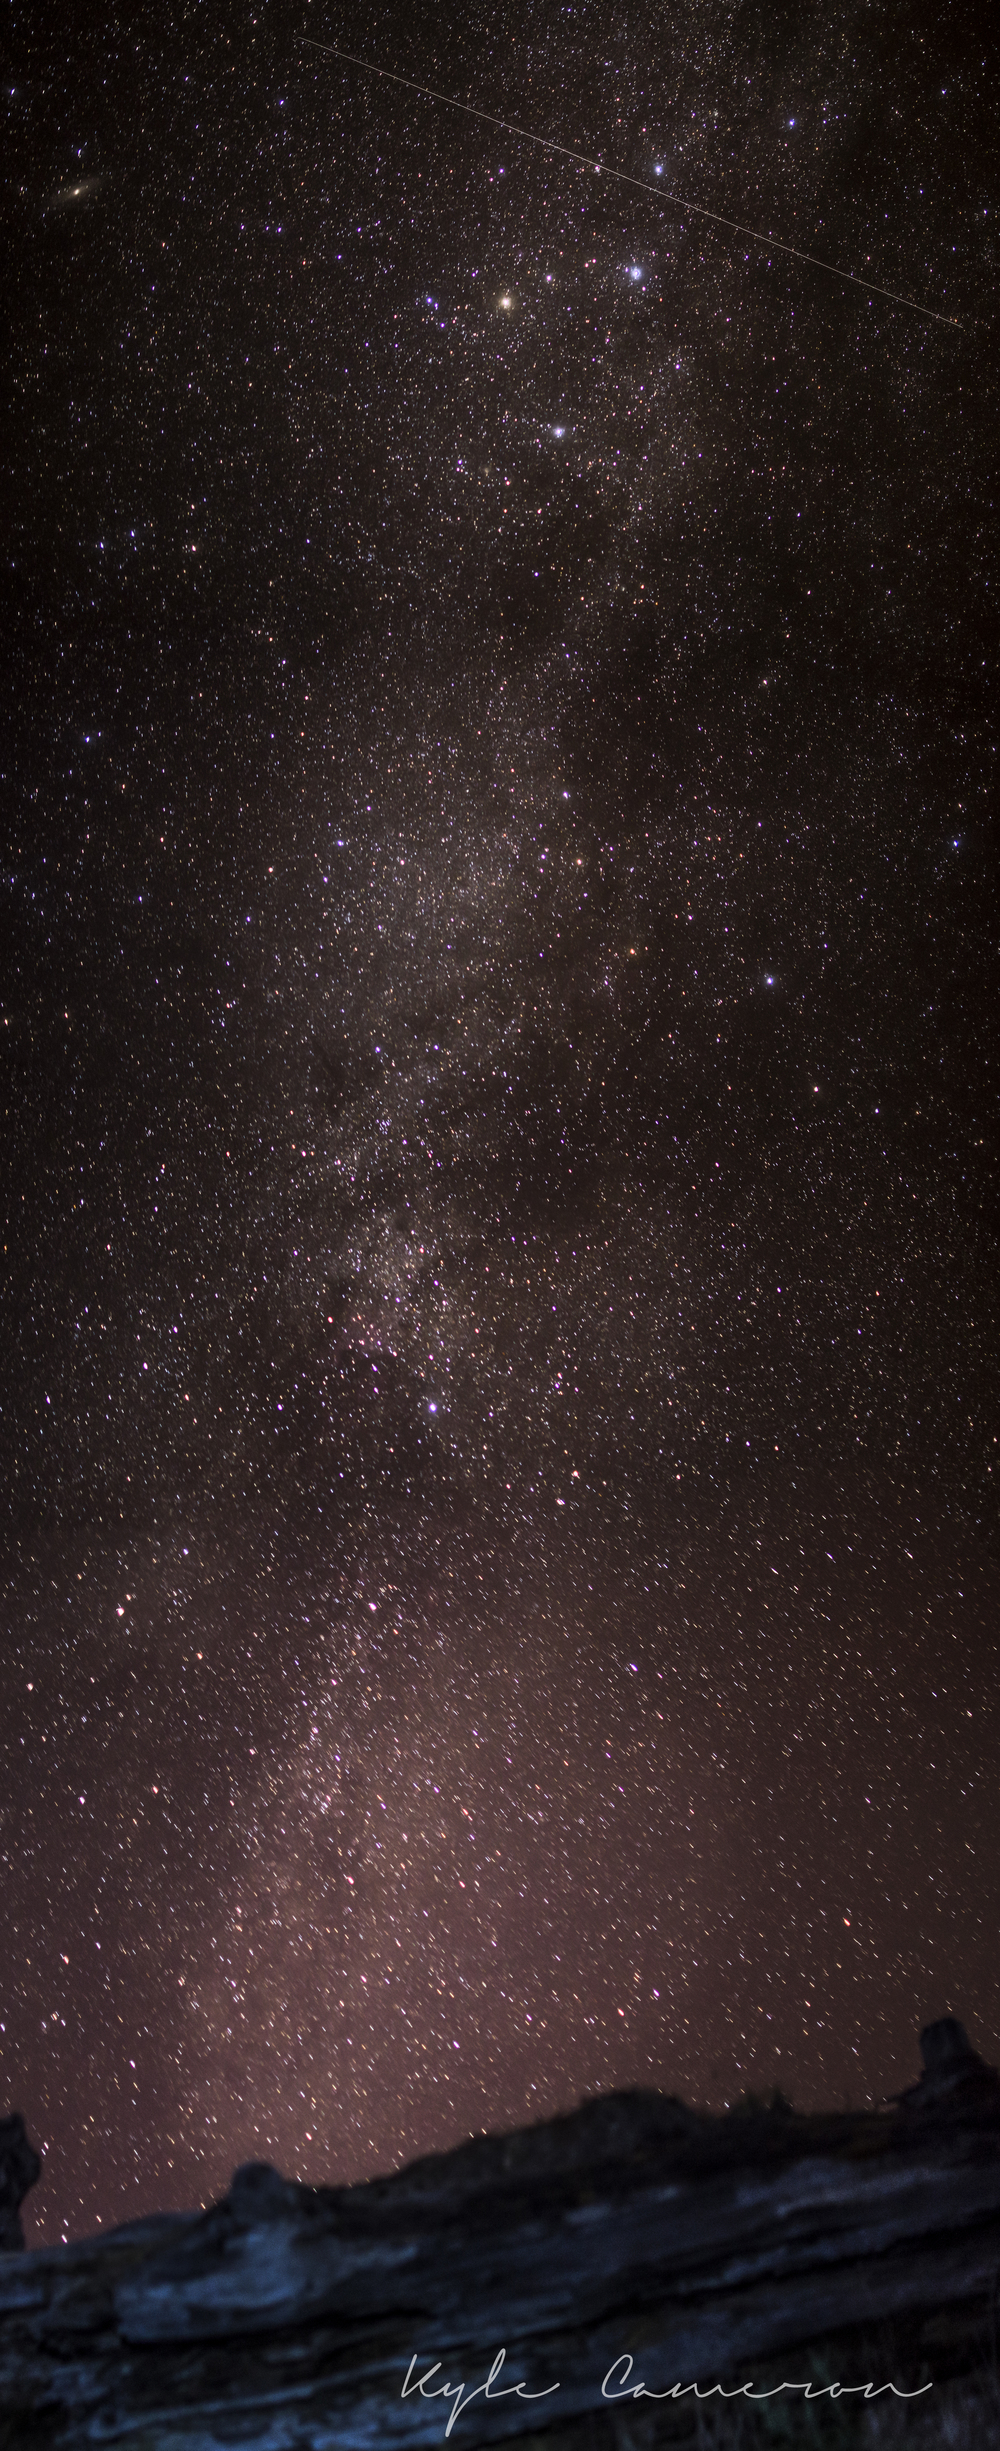 I know this isn't even a great shot of the Milky Way or anything, but I don't care. I'm so excited that I finally got something that turned out.